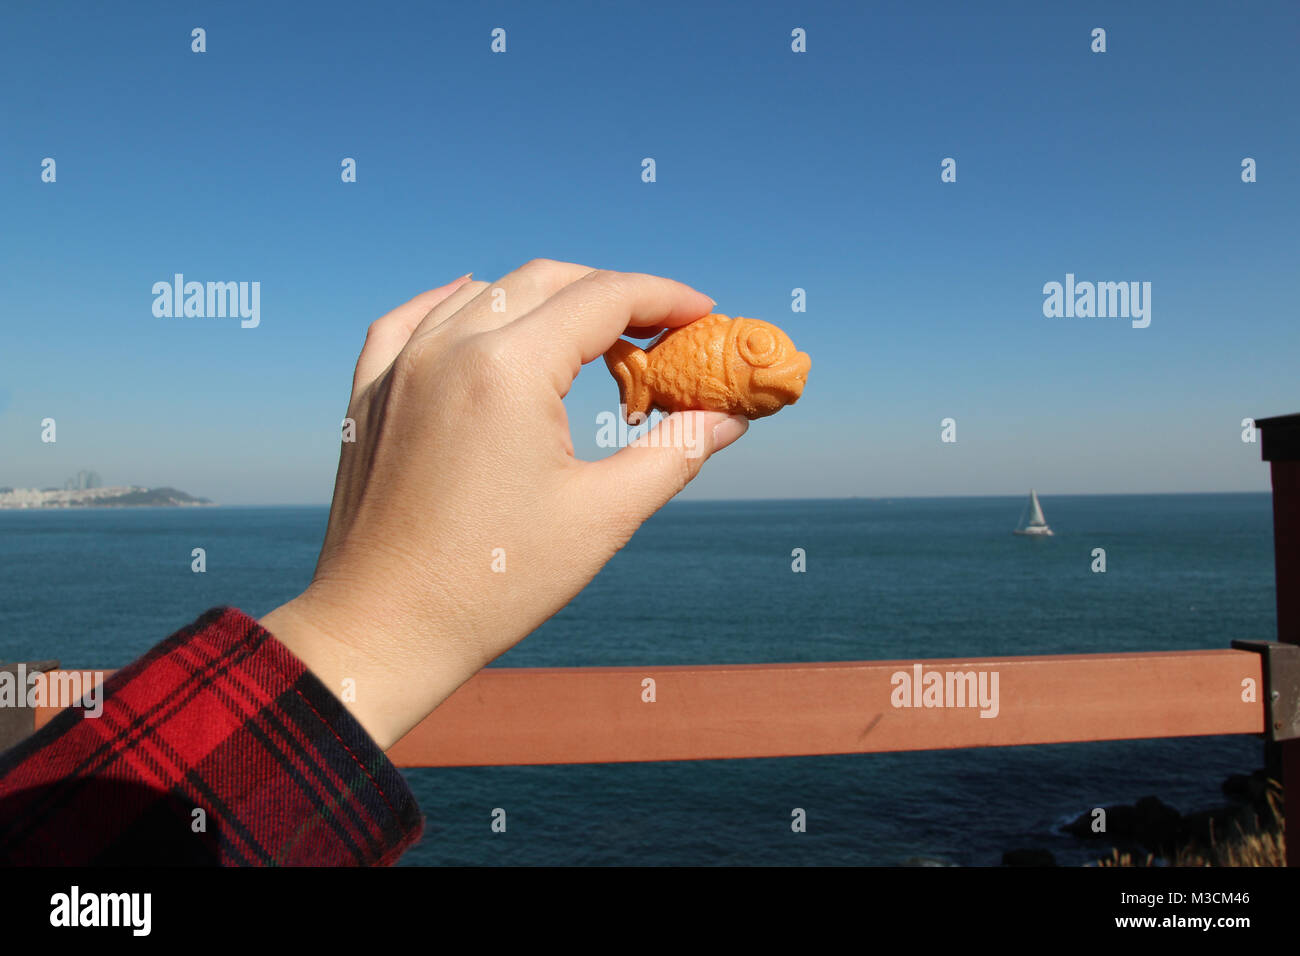 Hand holding a mini fish-shaped waffle with custard filling with the sea background in sunny day, South Korea - Stock Image